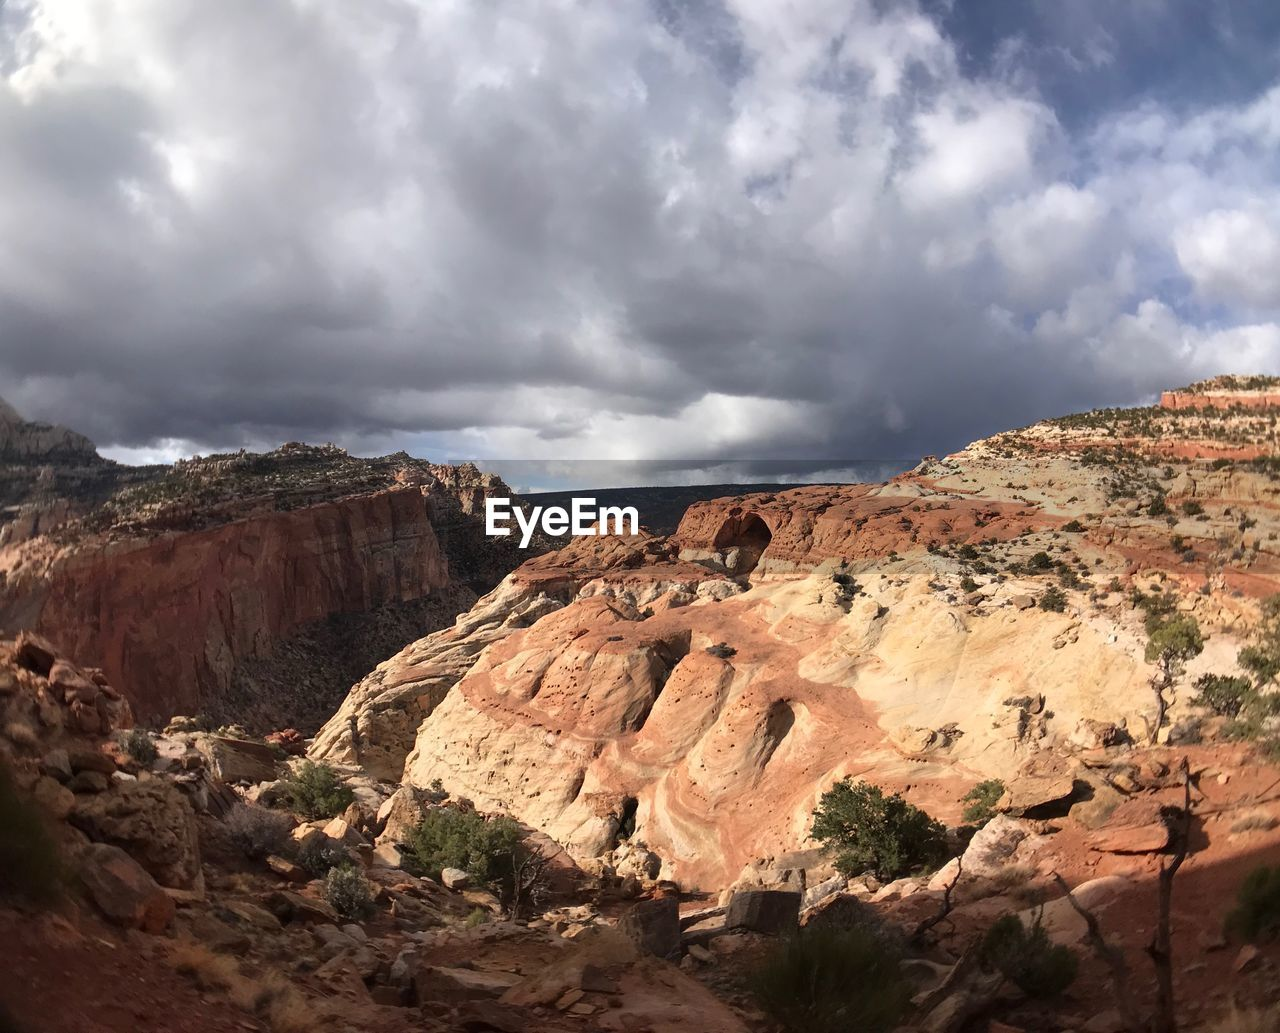 cloud - sky, rock, sky, scenics - nature, rock - object, beauty in nature, solid, tranquil scene, rock formation, environment, non-urban scene, landscape, tranquility, nature, mountain, geology, physical geography, no people, remote, day, formation, mountain range, eroded, arid climate, climate, sandstone